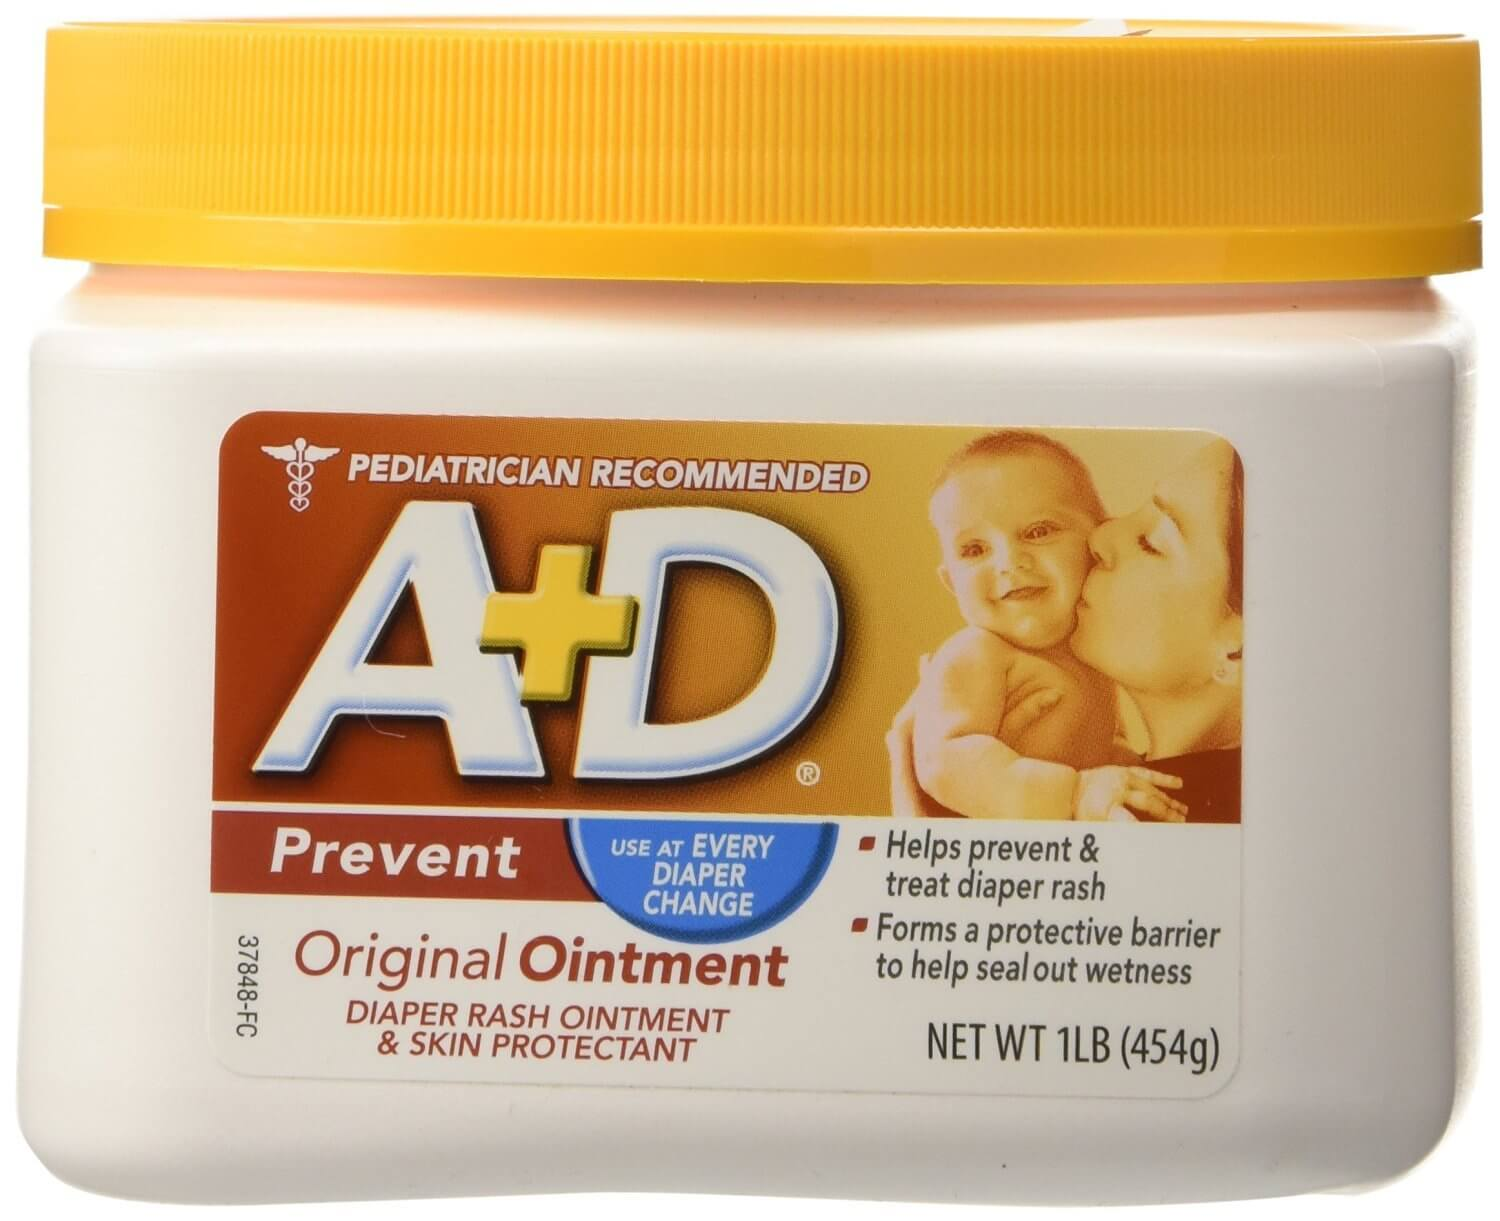 If you're looking for a good aquaphor alternative, A+D Ointment & Skin Protectant is one